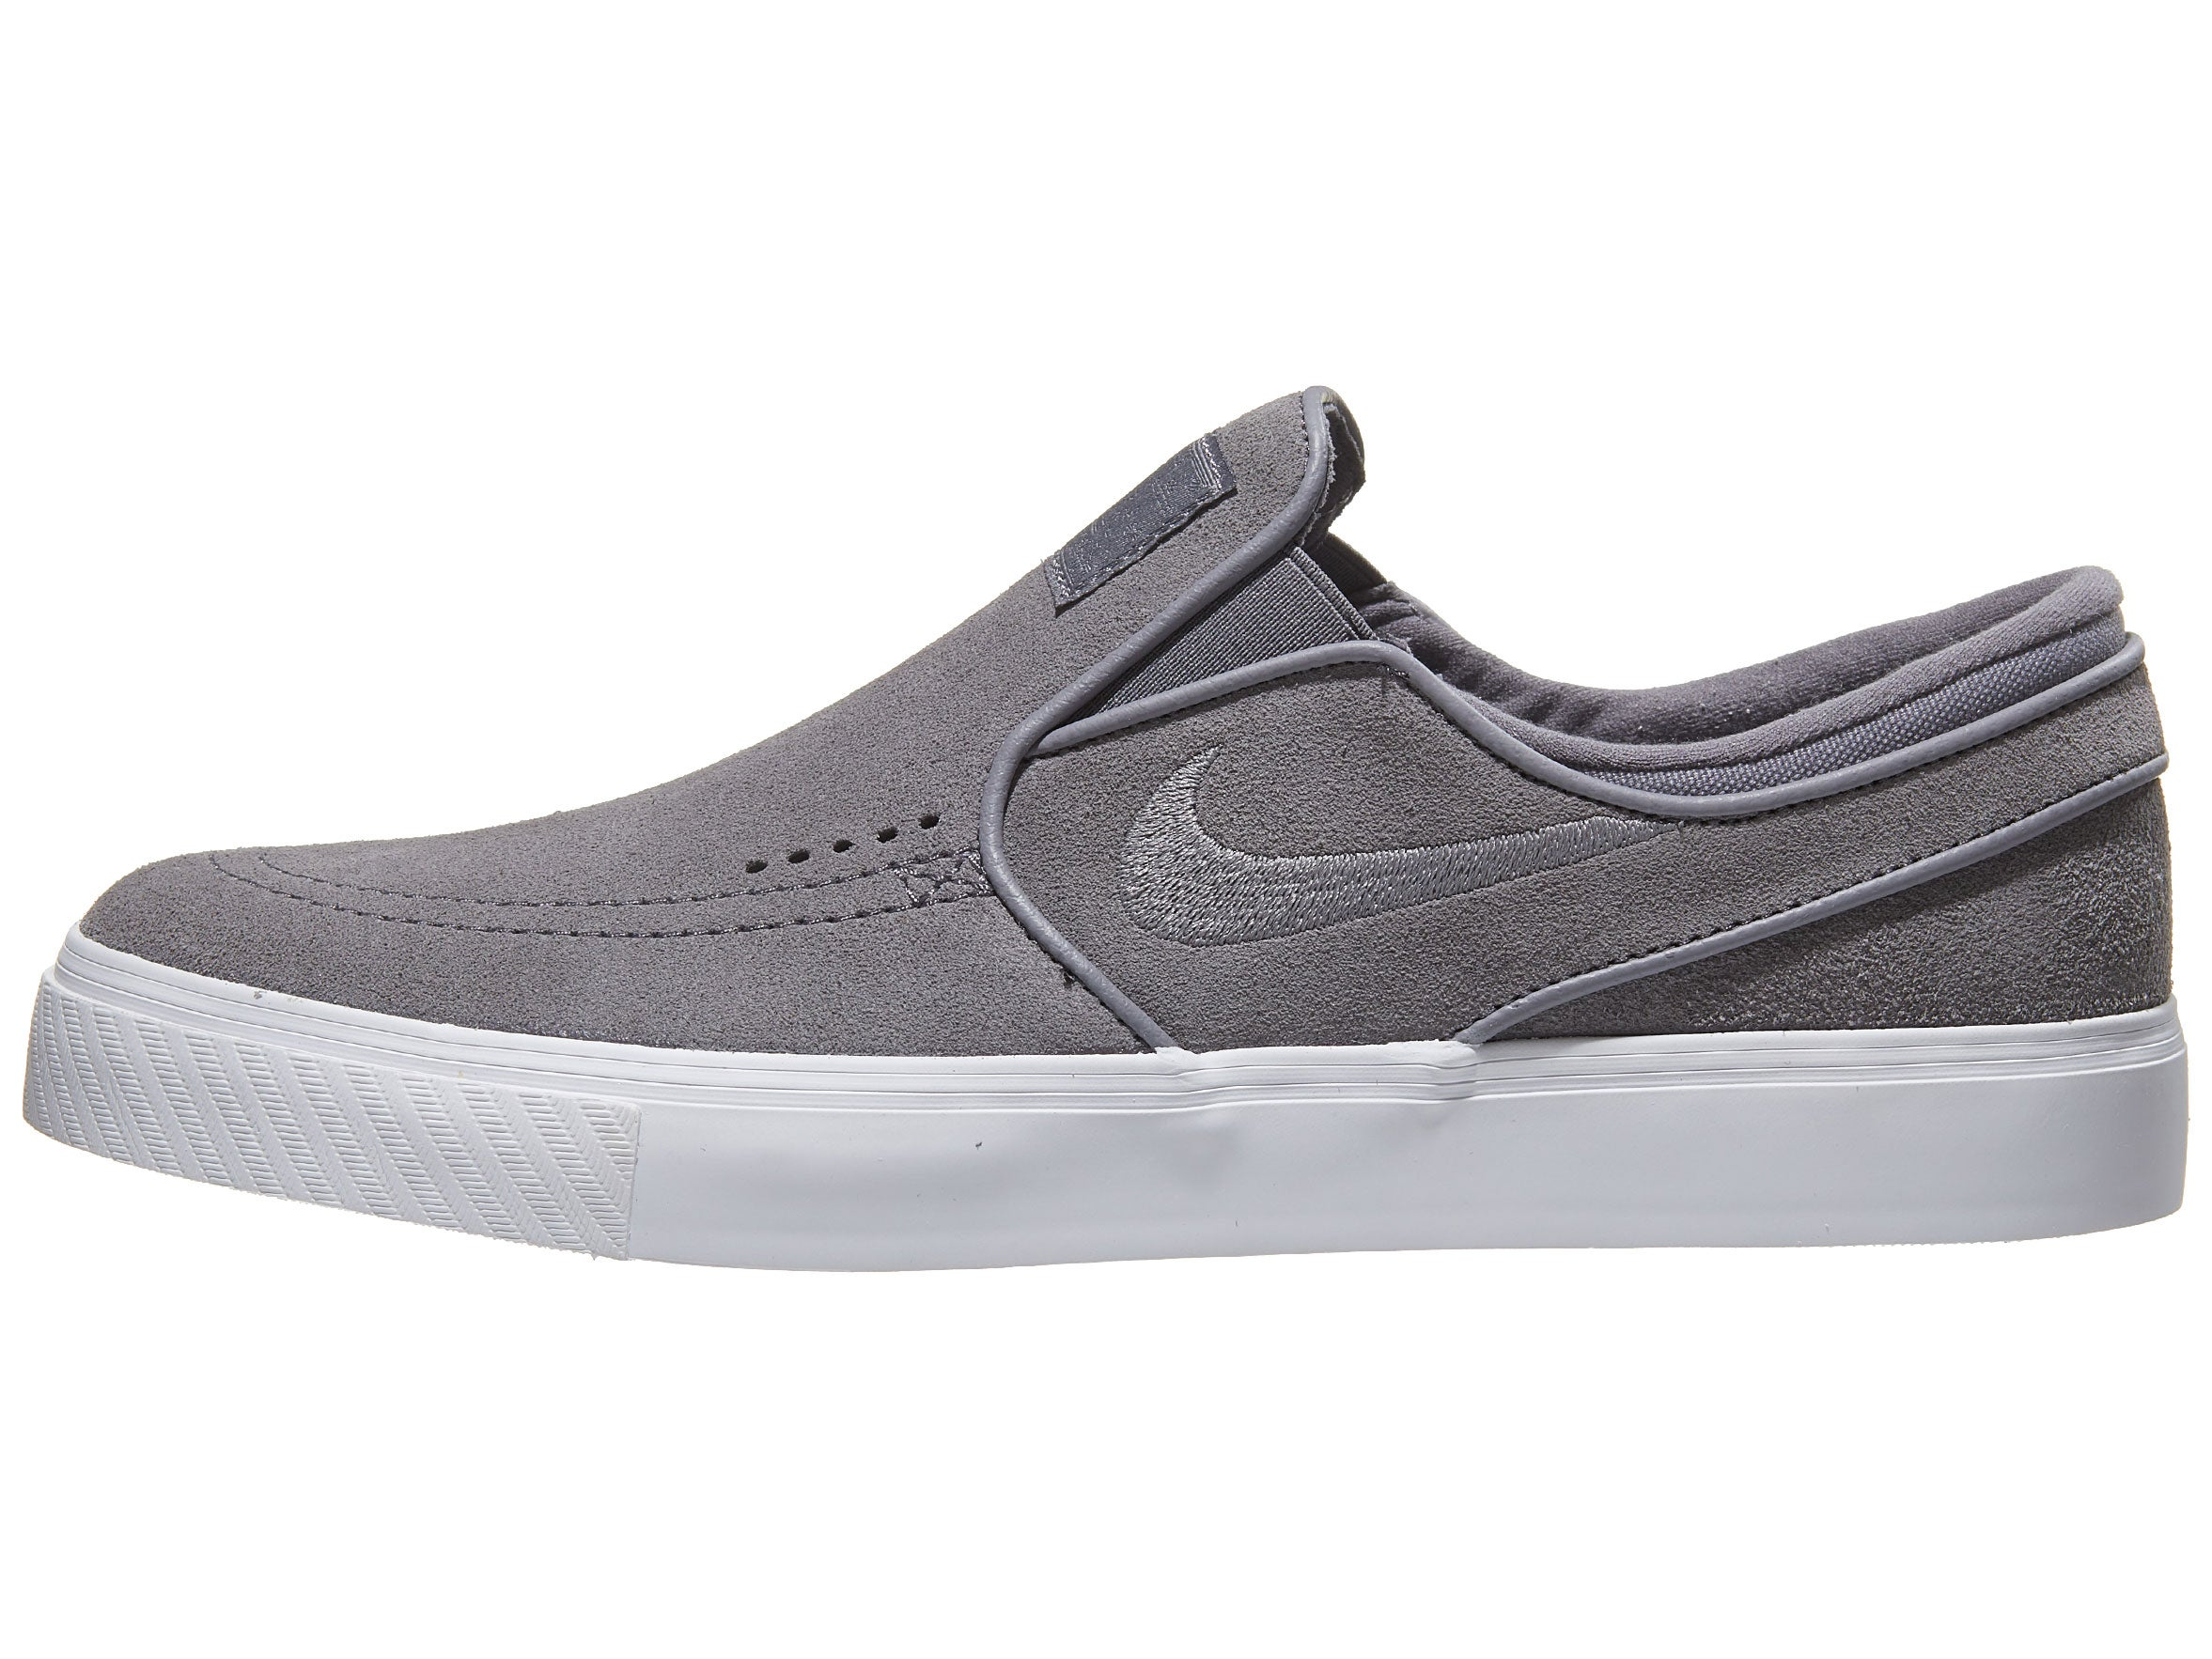 Nike SB Janoski Slip Shoes Gunsmoke/Gunsmoke-White